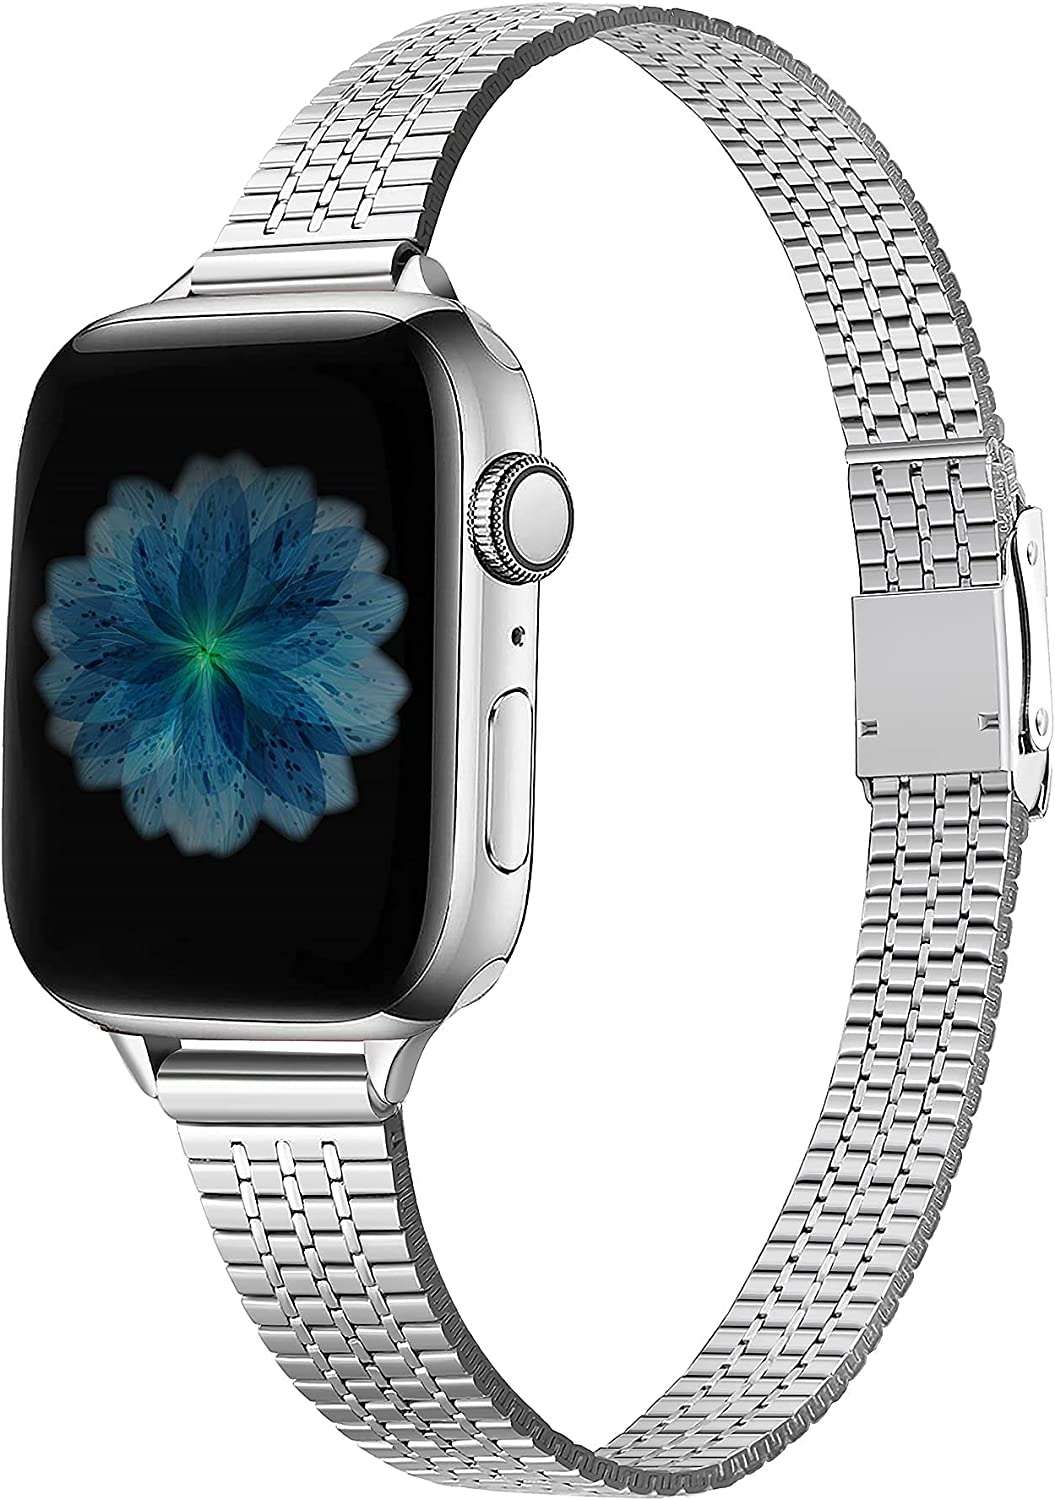 Secbolt Thin Bands Compatible with Apple Watch Band 38mm 40mm iWatch SE Series 6/5/4/3/2/1, Stainless Steel Women Dressy Wristband Secure Double Lock